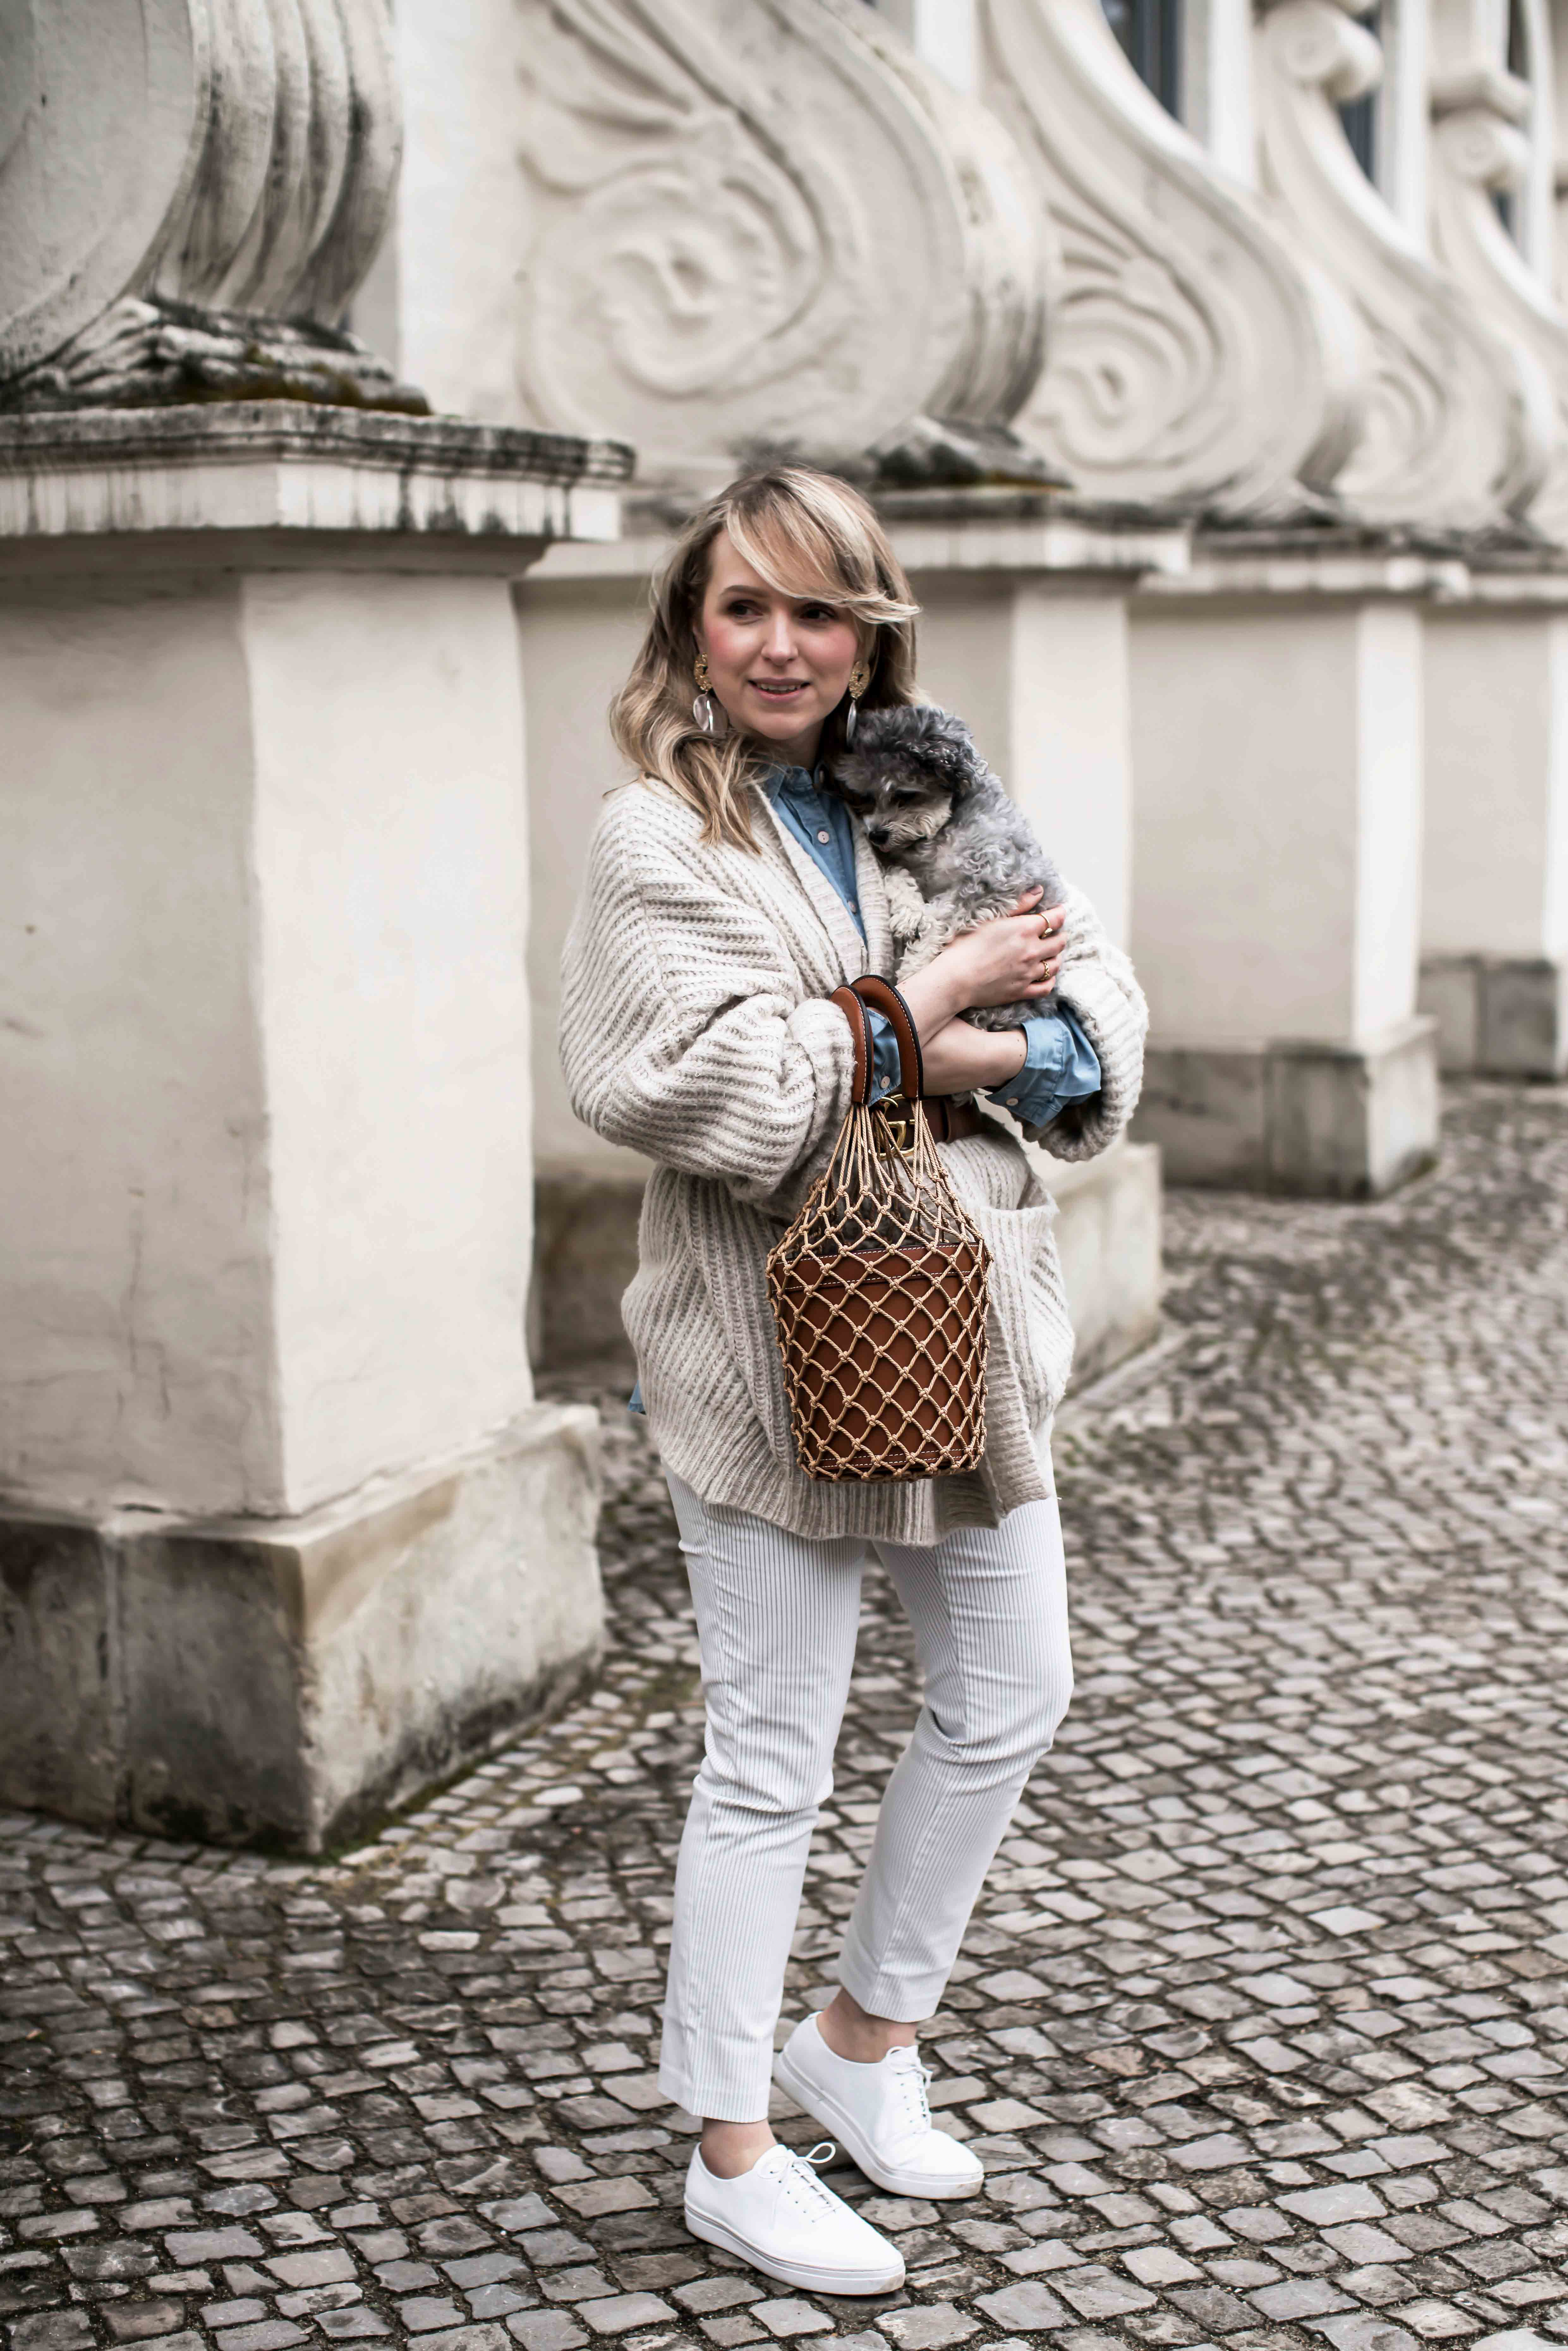 Family First Hundemom ootd: Gucci meets zara knitwear